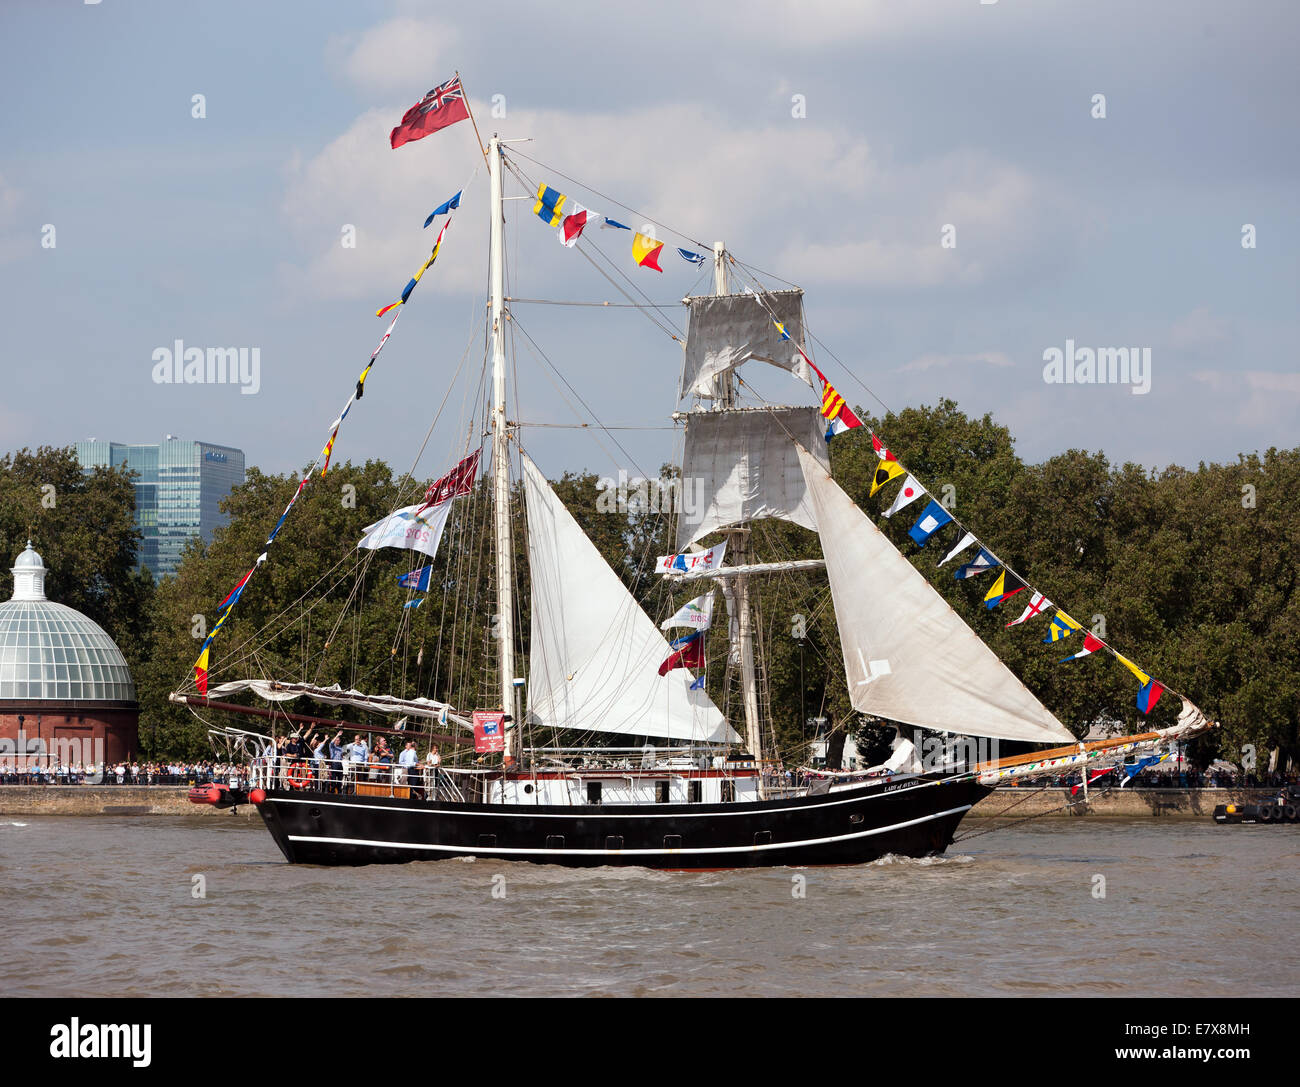 The Lady of Avenel, a Brigantine square rigger sailing ship,taking part in the Parade of Sail, during the Tall Ships - Stock Image